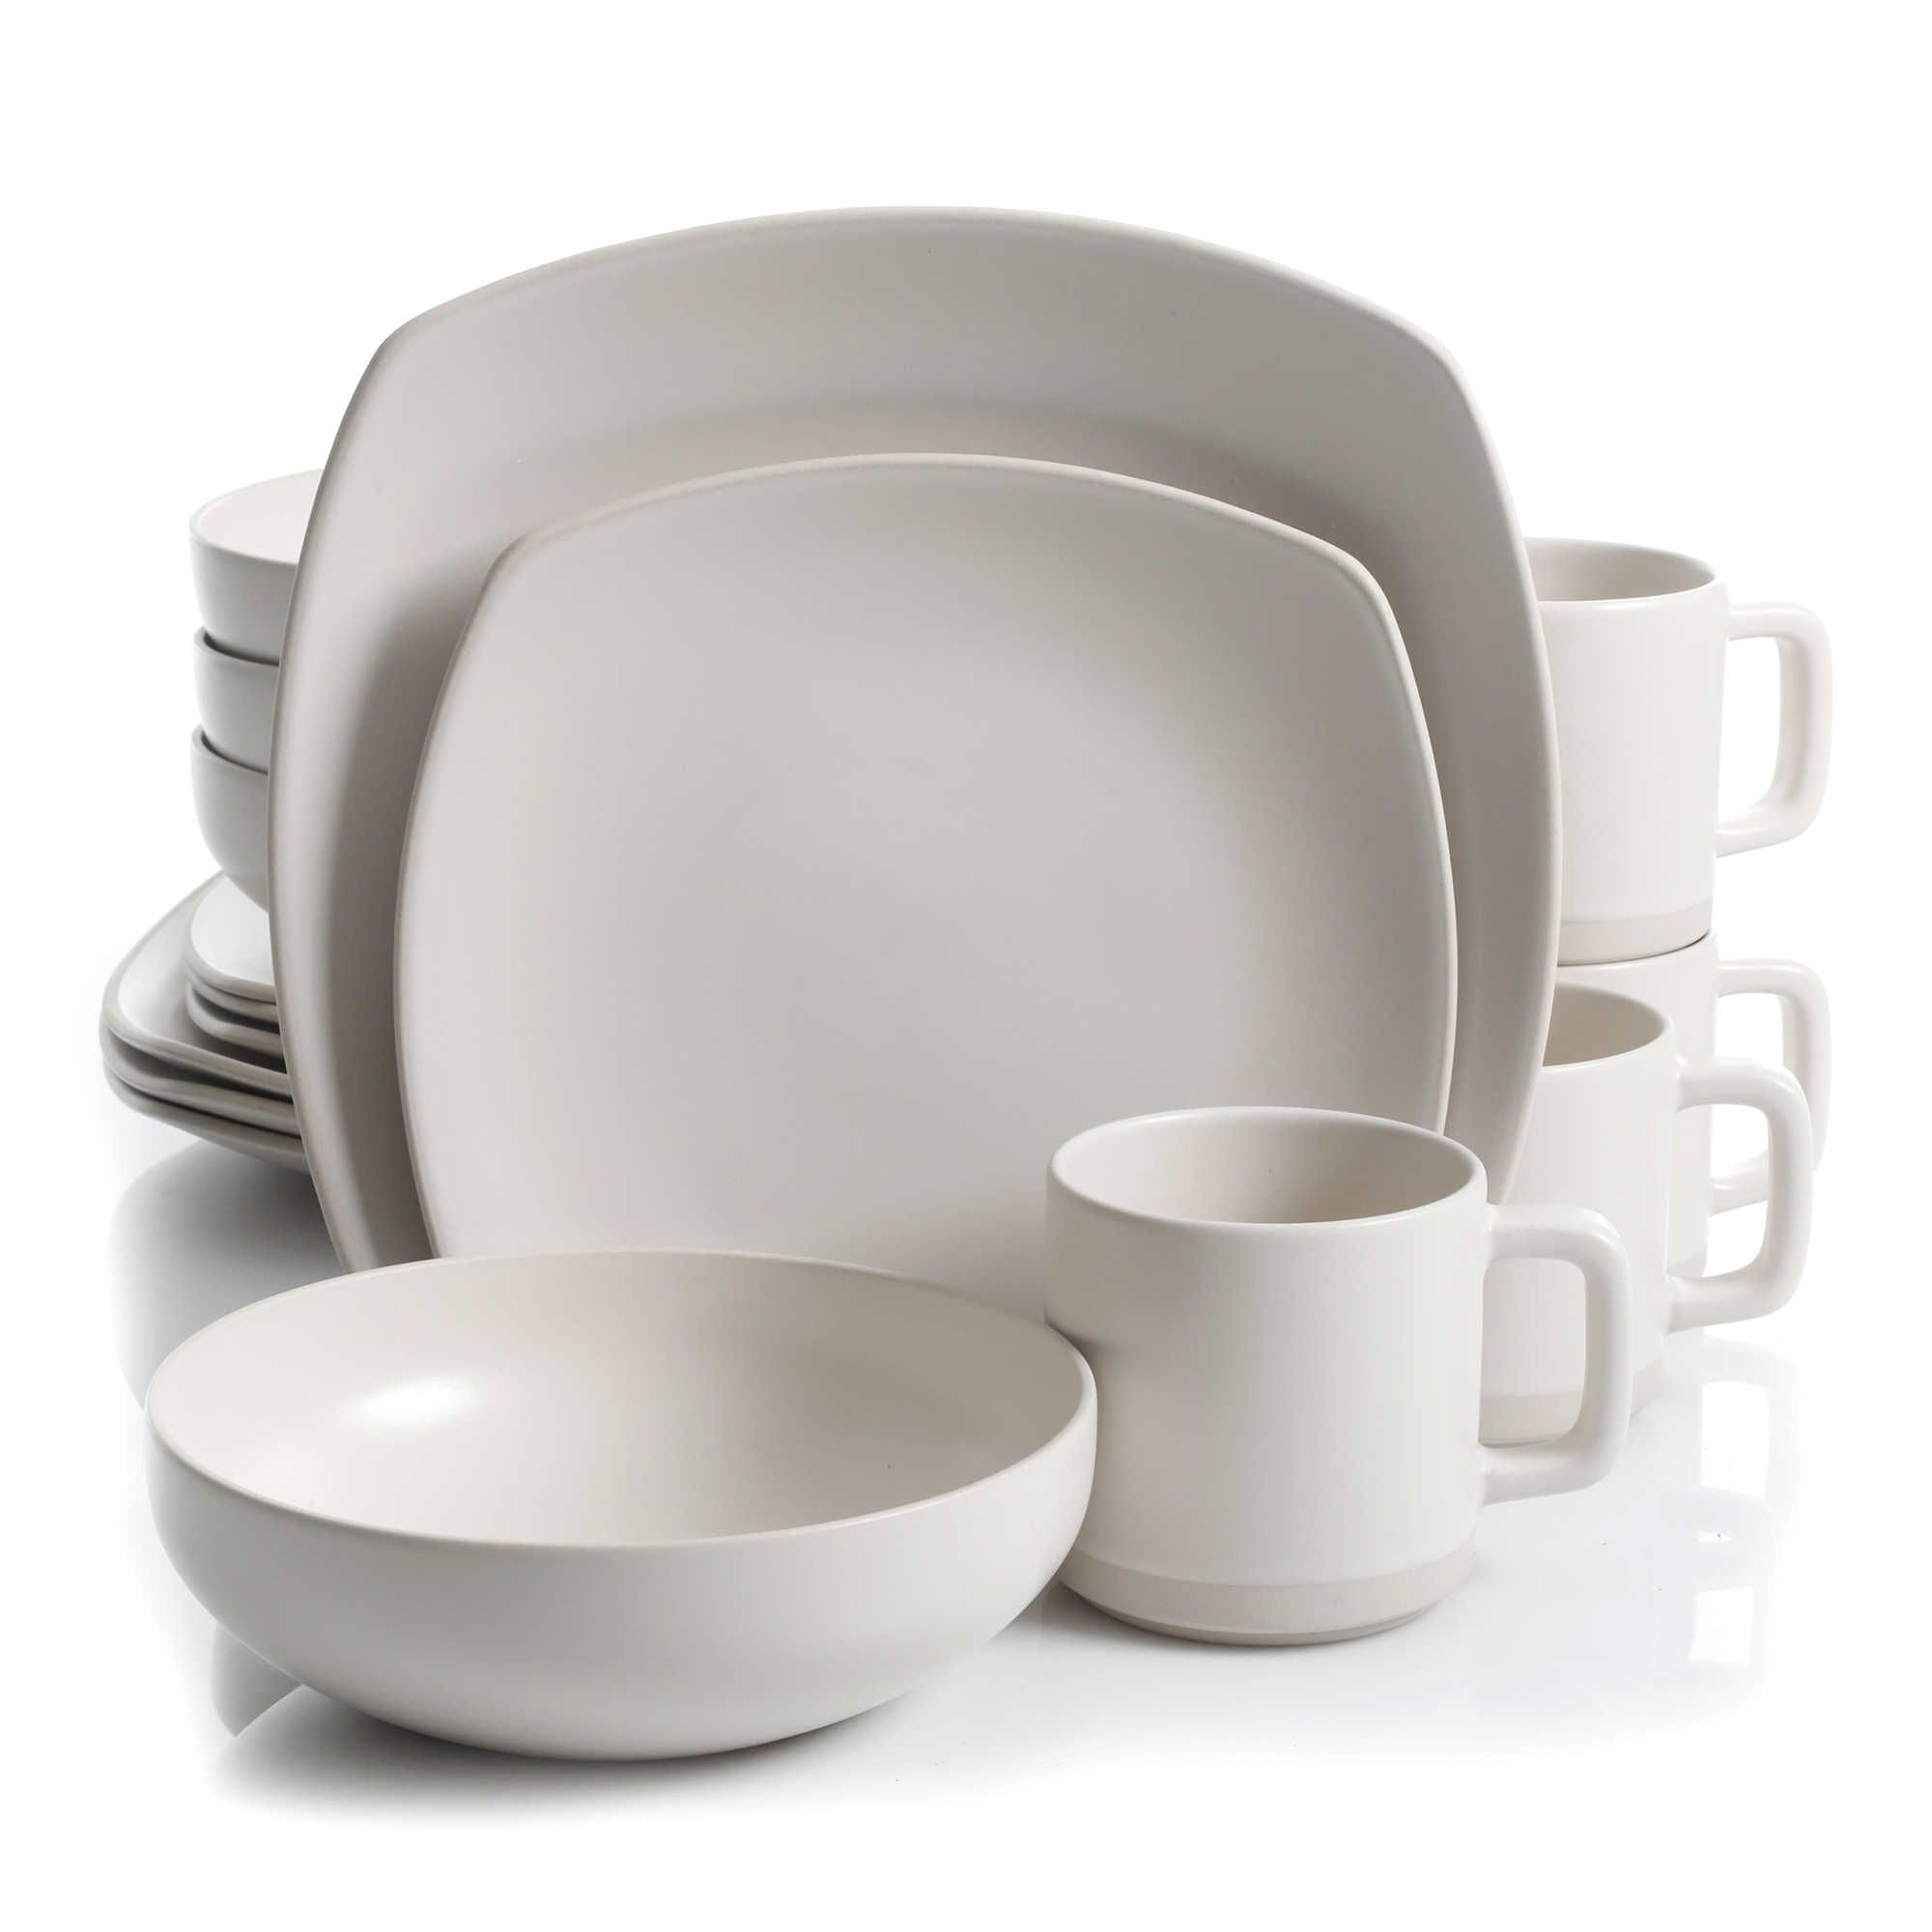 Al Kitchen Supply Edge 16 Piece Square Dinnerware